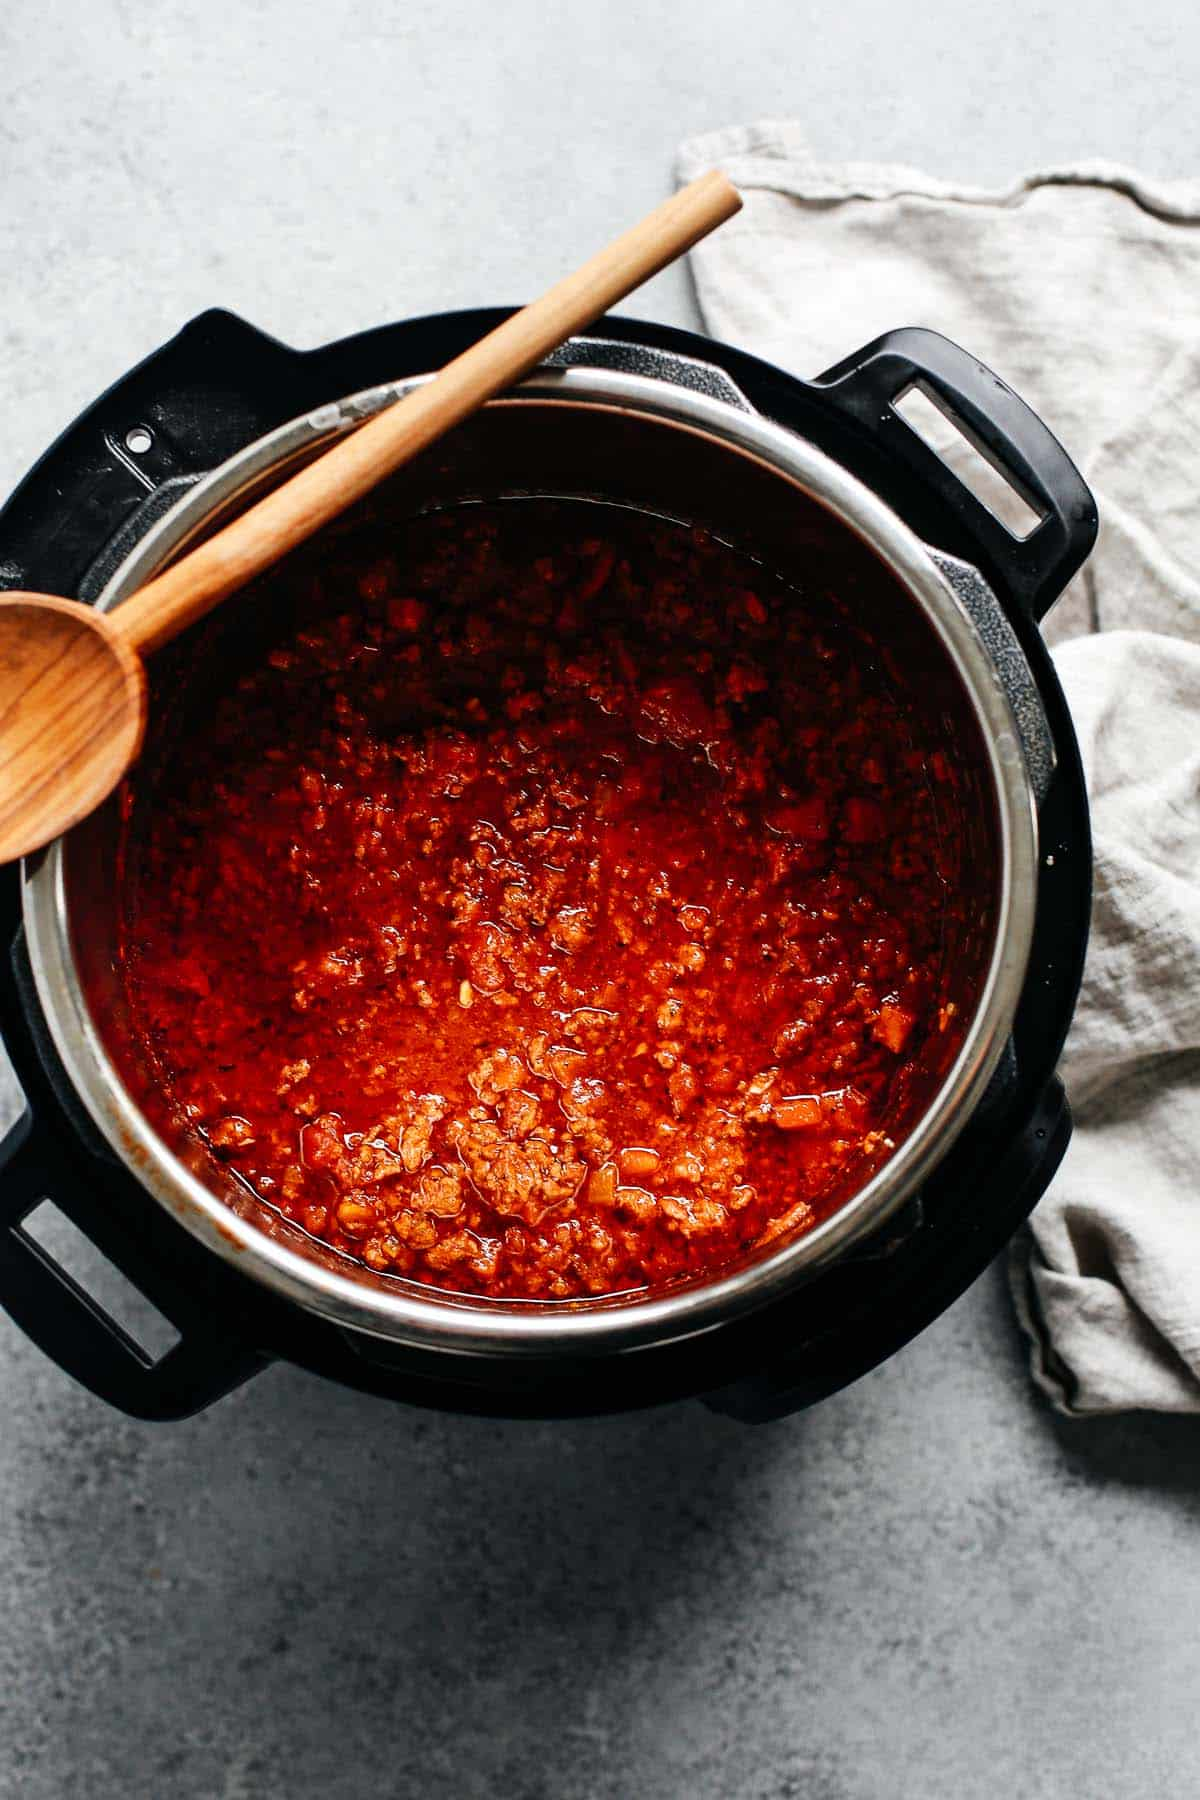 instant pot meat sauce (in an electric pressure cooker)